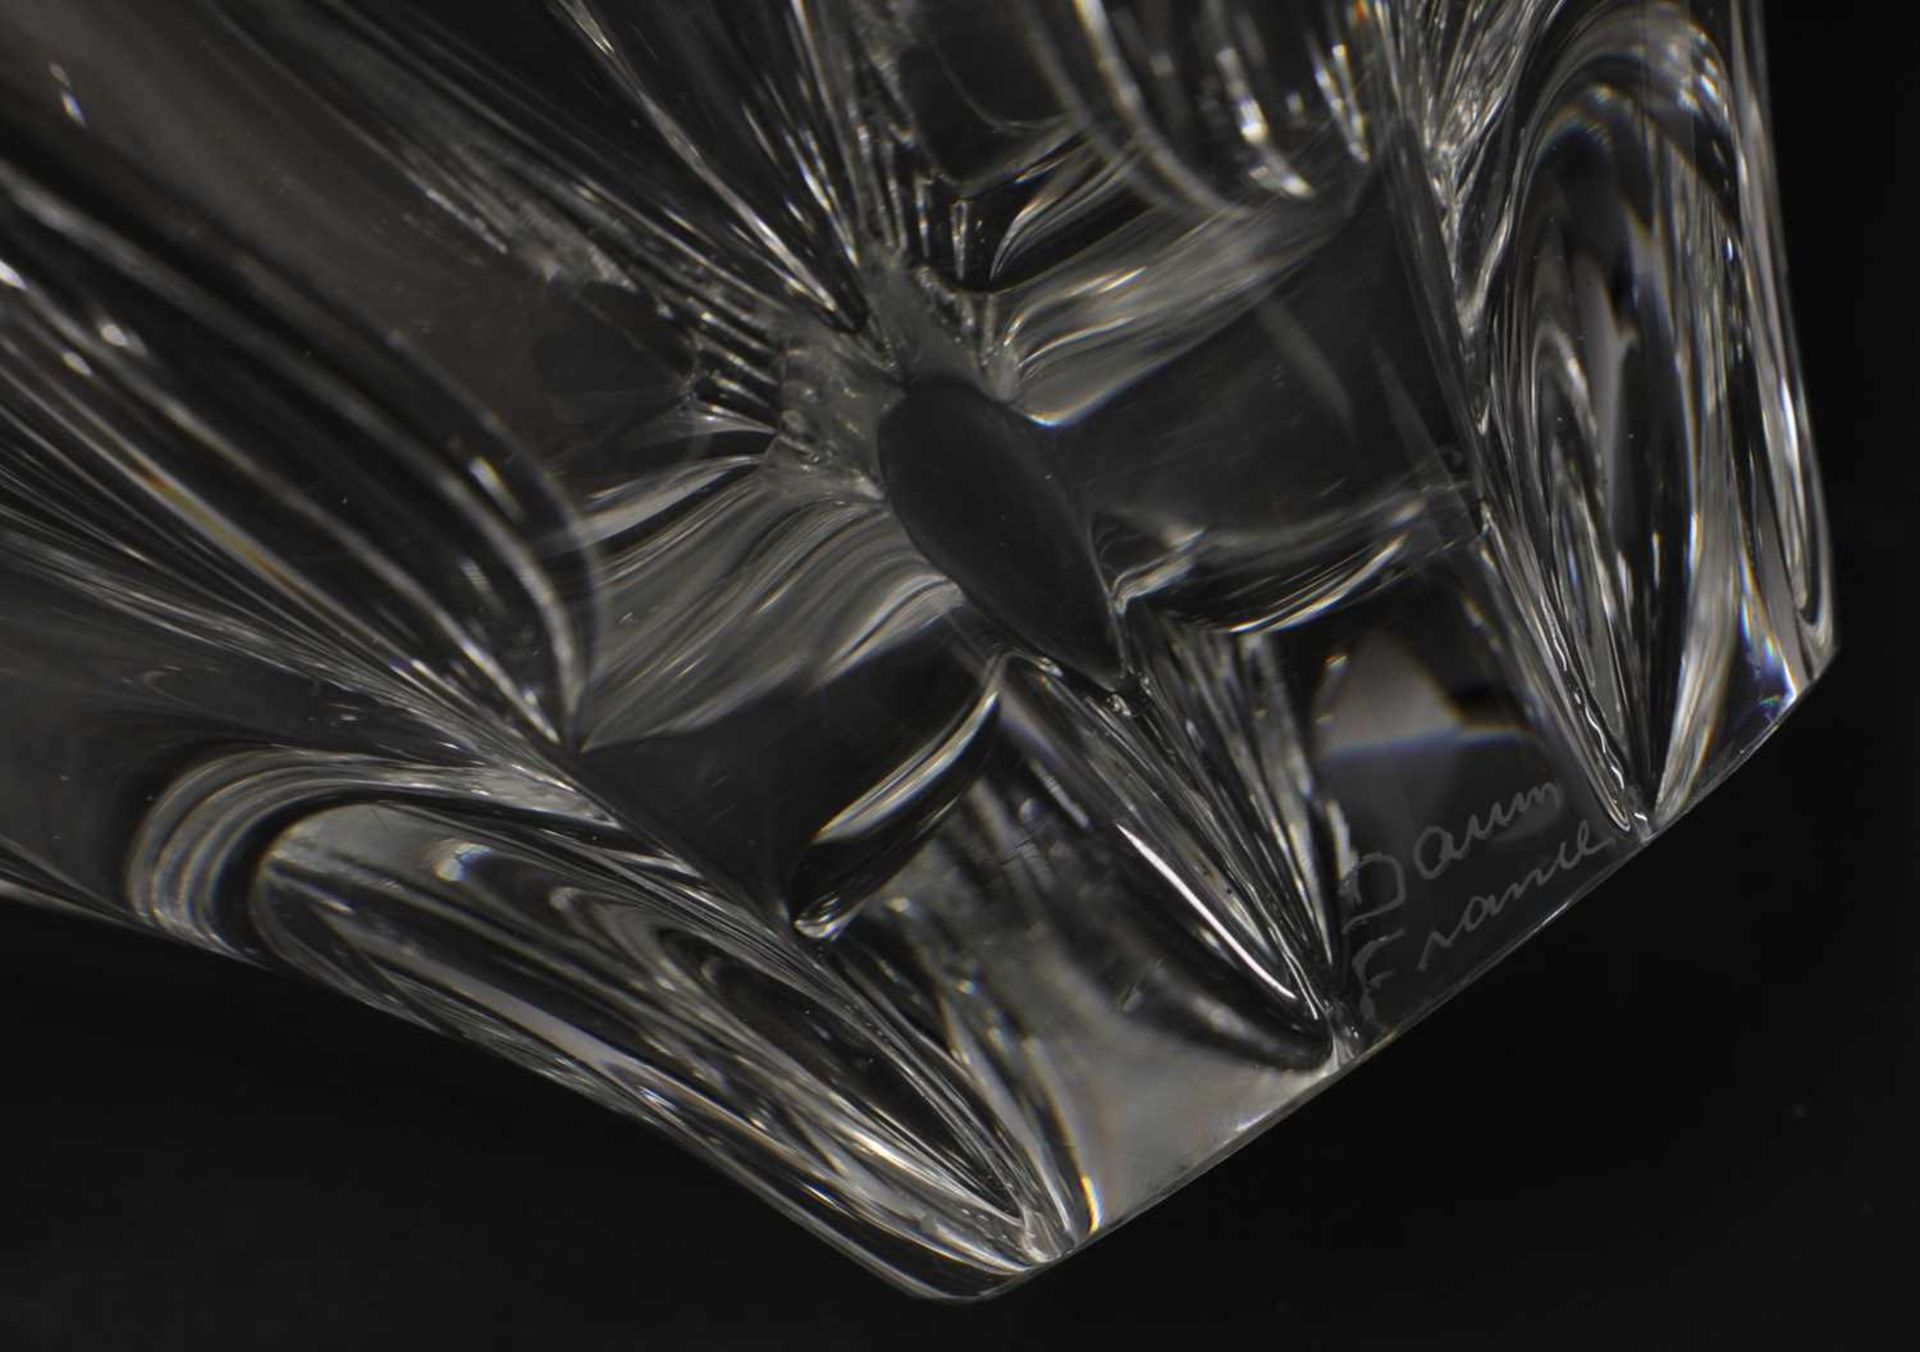 A Daum clear glass bowl, - Image 4 of 4